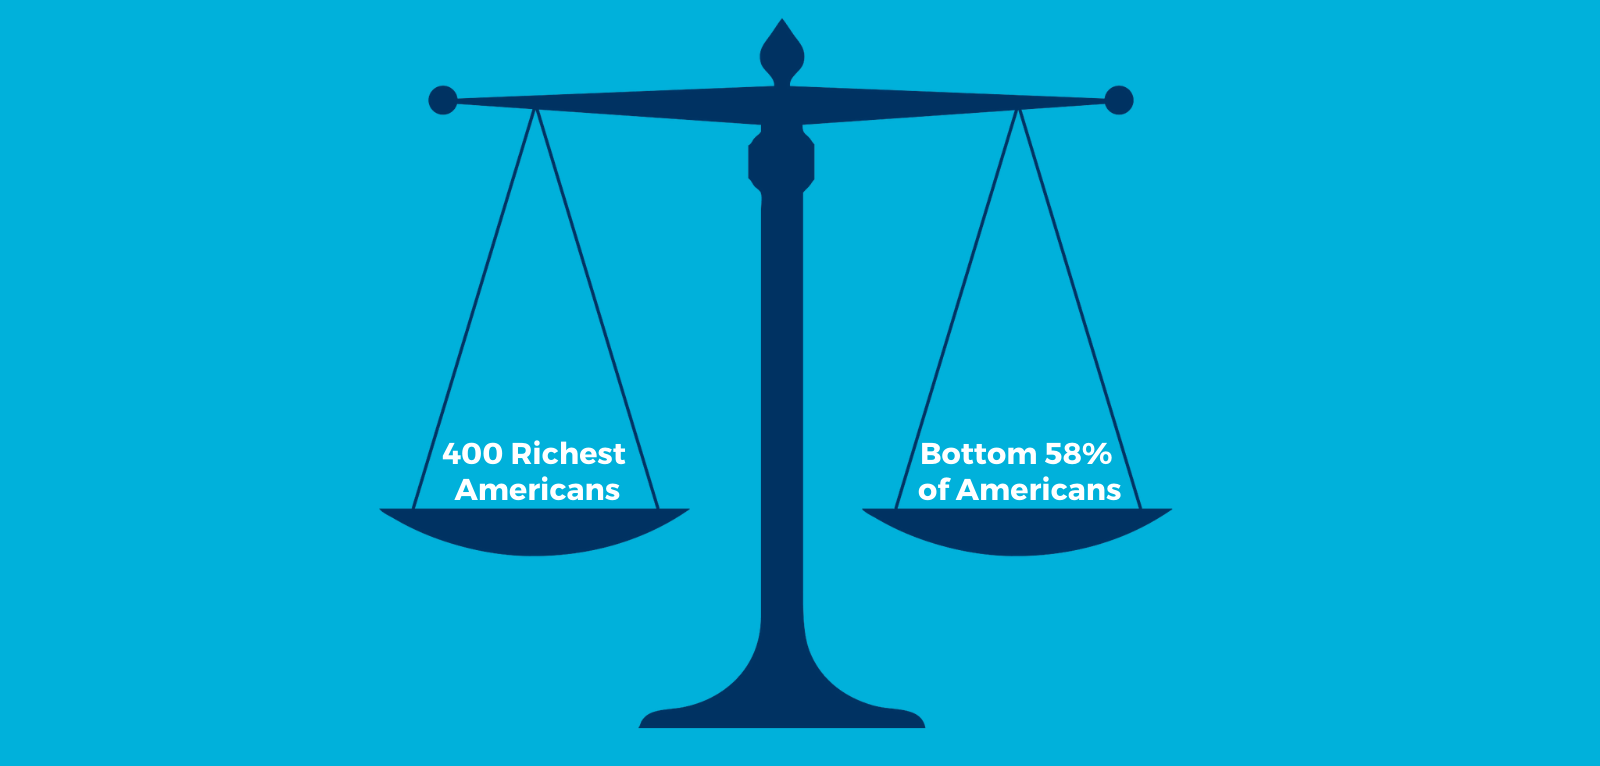 """Balanced scales of justice with """"400 richest Americans"""" on one side and """"Bottom 58% of Americans"""" on the other"""